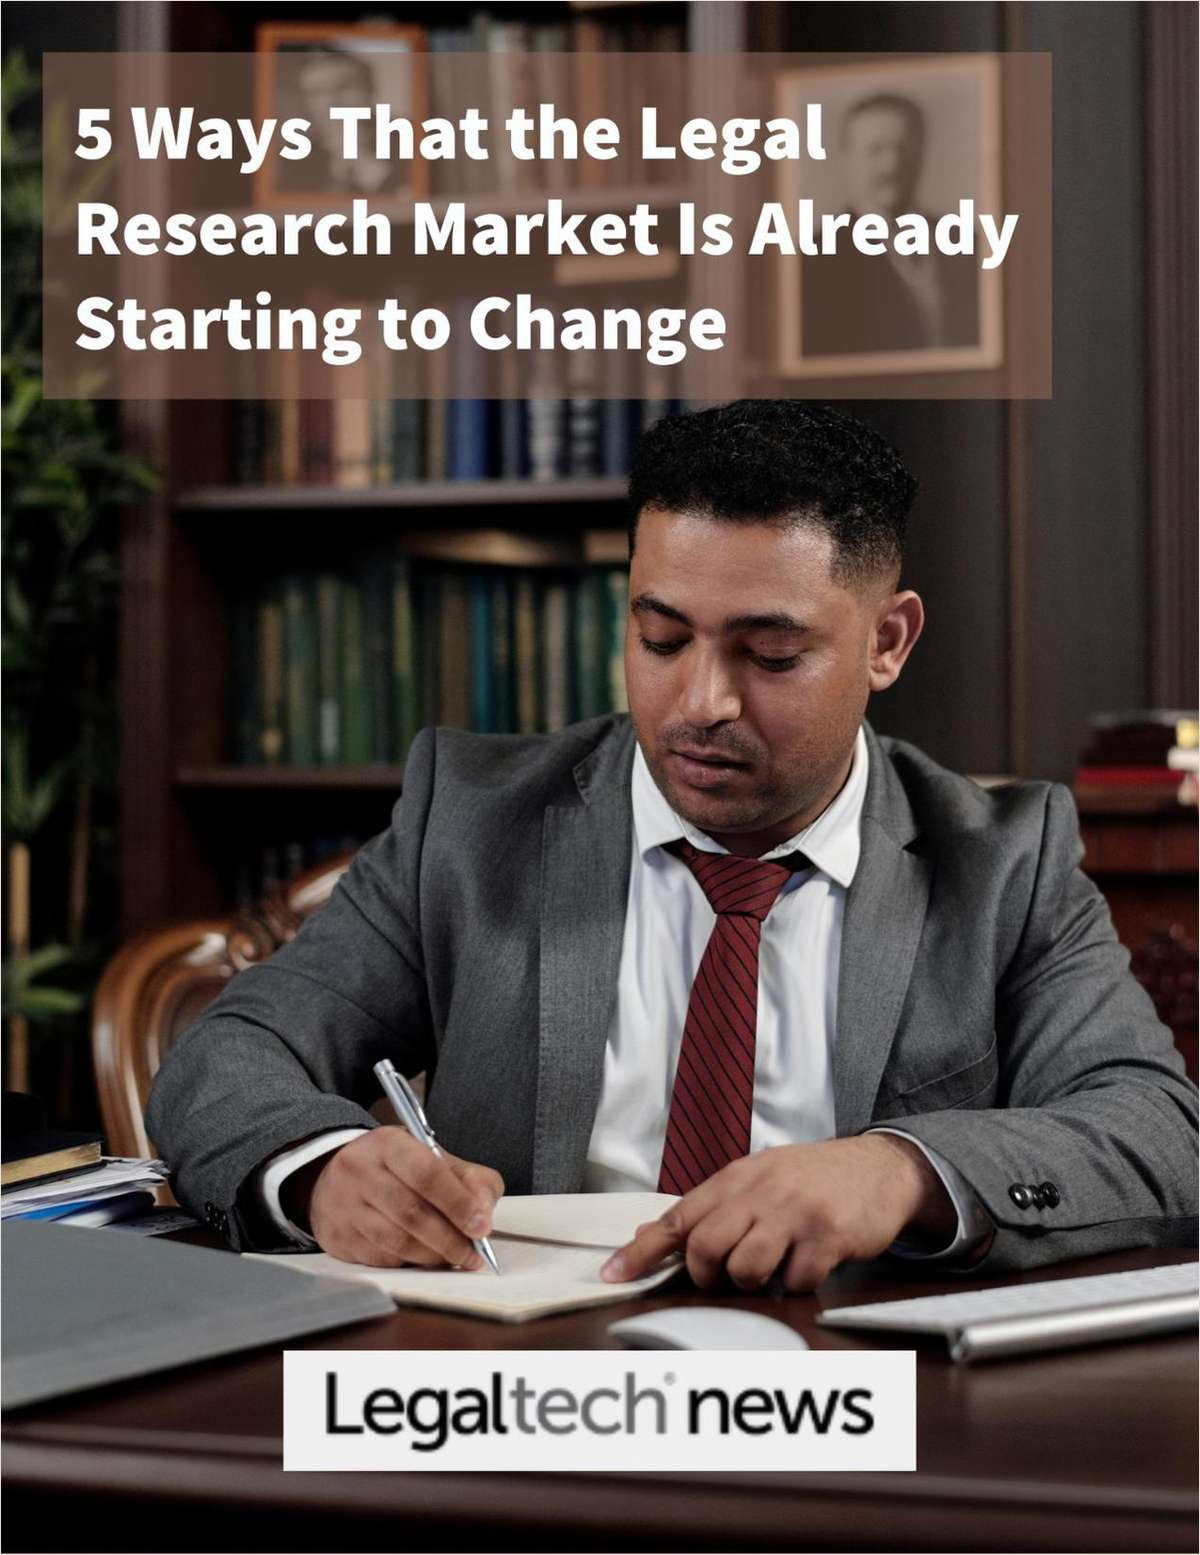 5 Ways That the Legal Research Market Is Already Starting to Change